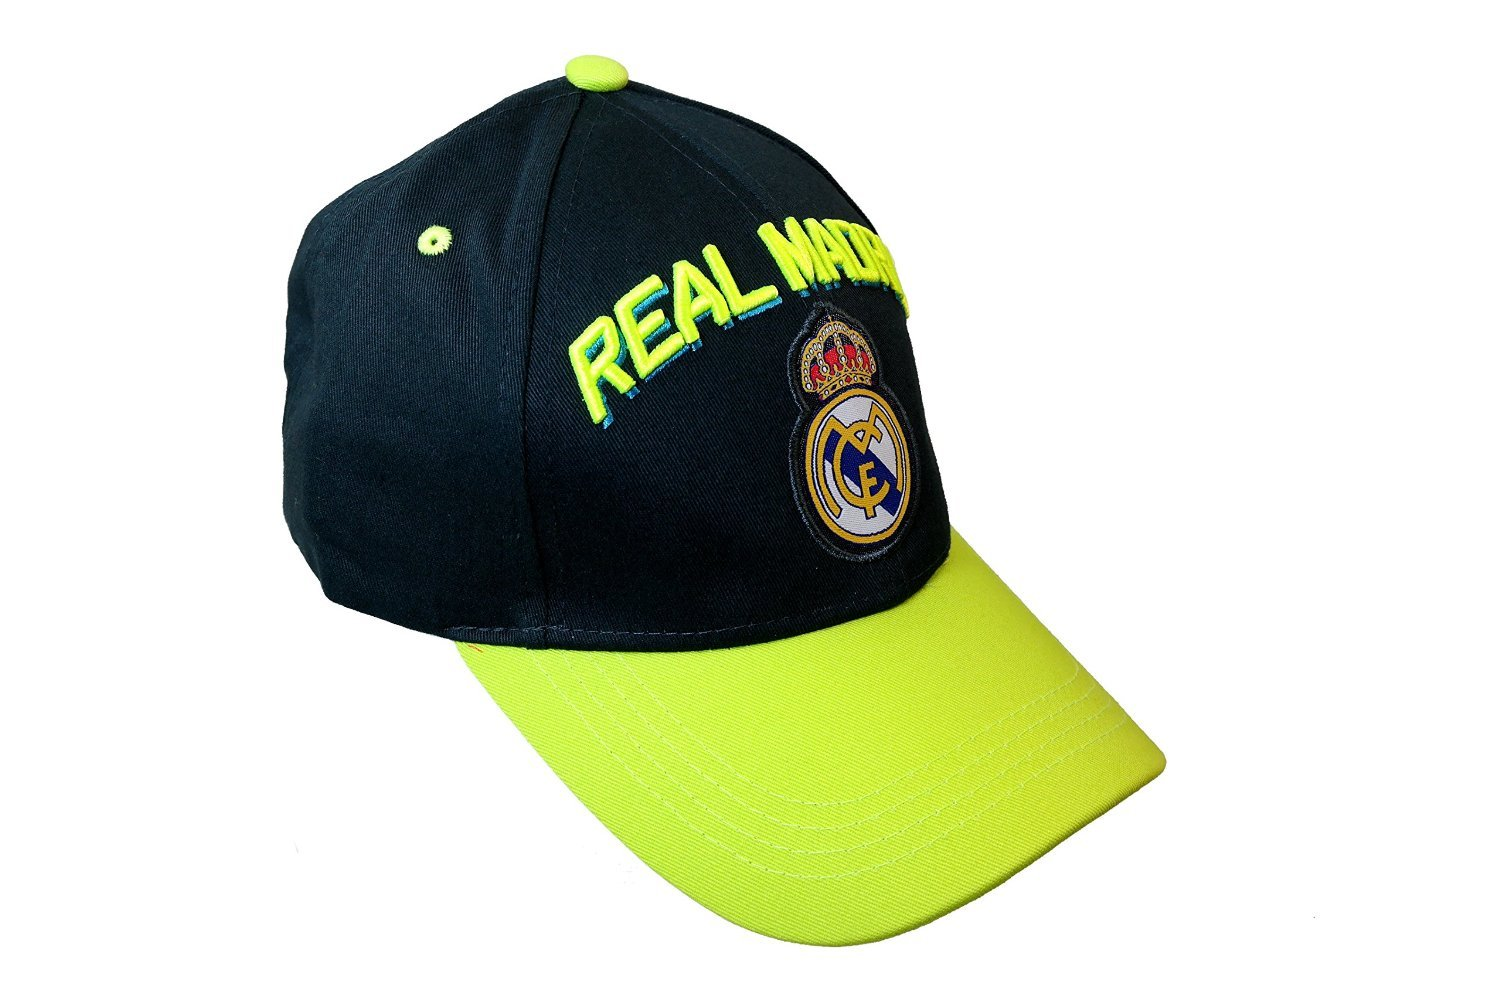 Amazon.com : Real Madrid Spain Soccer Sun Buckle La Liga Curved Bill Gorra White Hat Cap : Sports Fan Baseball Caps : Sports & Outdoors